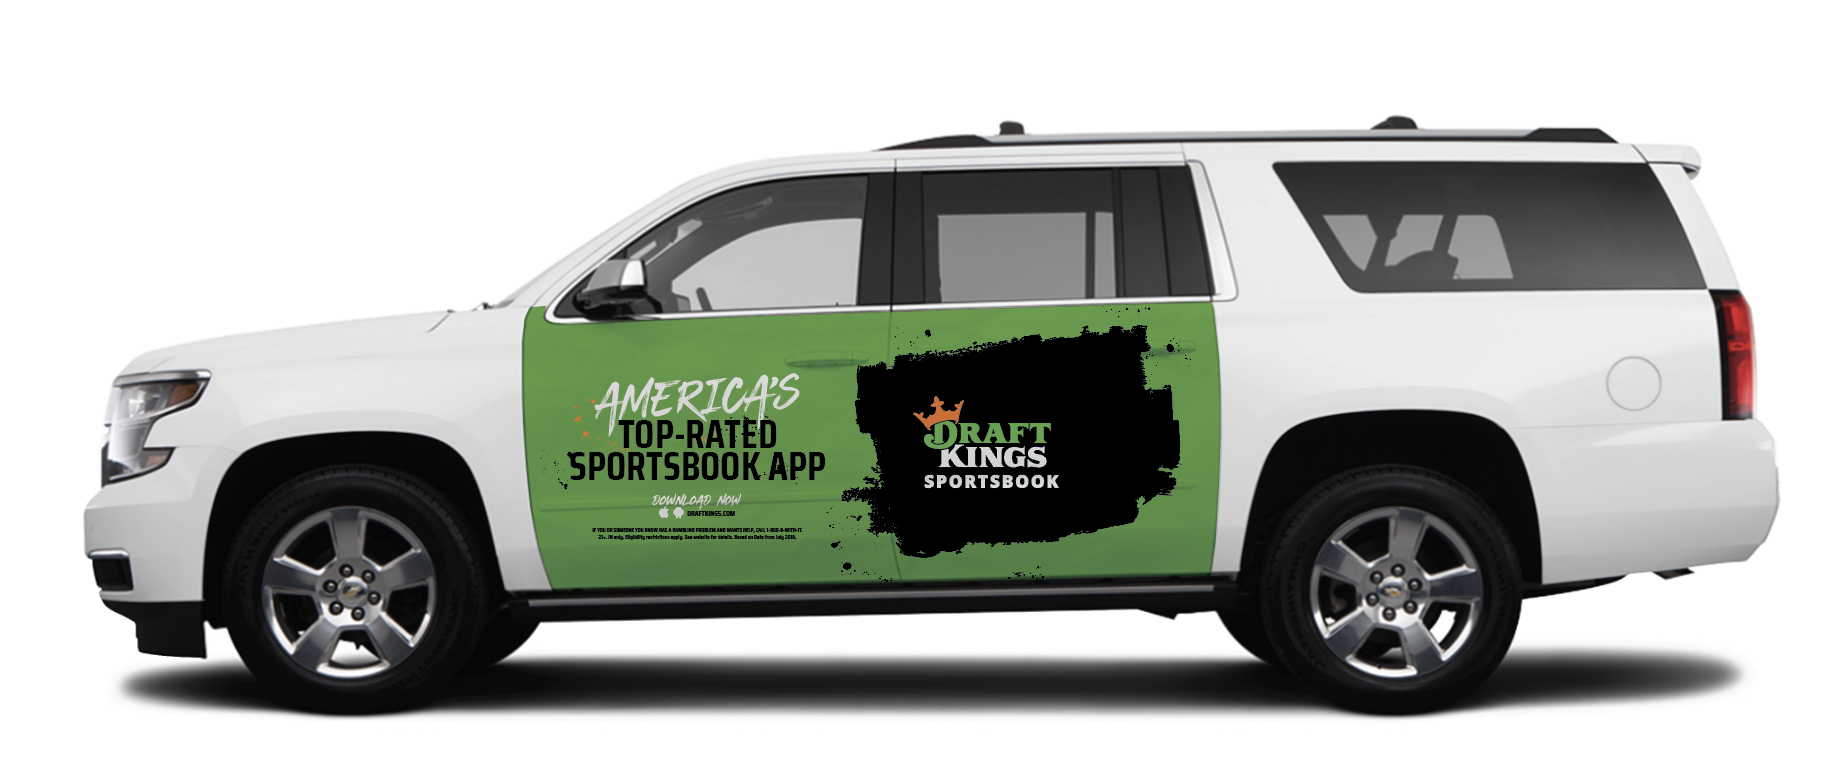 - We're proud to partner with DraftKings to provide rideshare drivers in Fort Wayne an easy way to earn money on their vehicle. Sign up today!